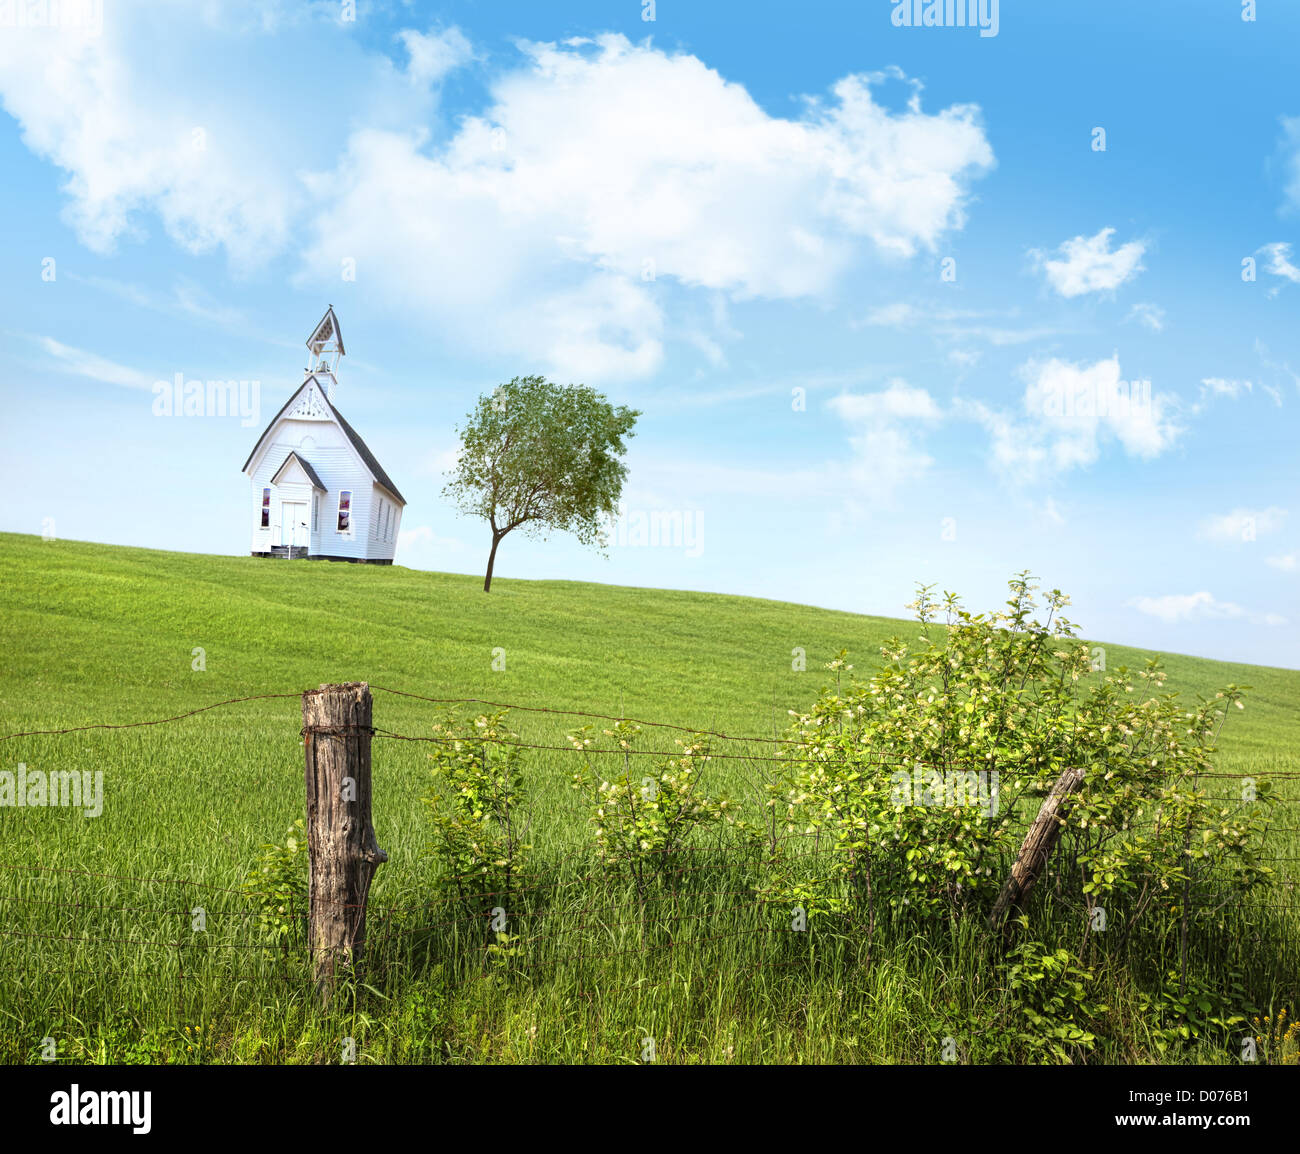 Old country school house  on a hill against a blue sky Stock Photo